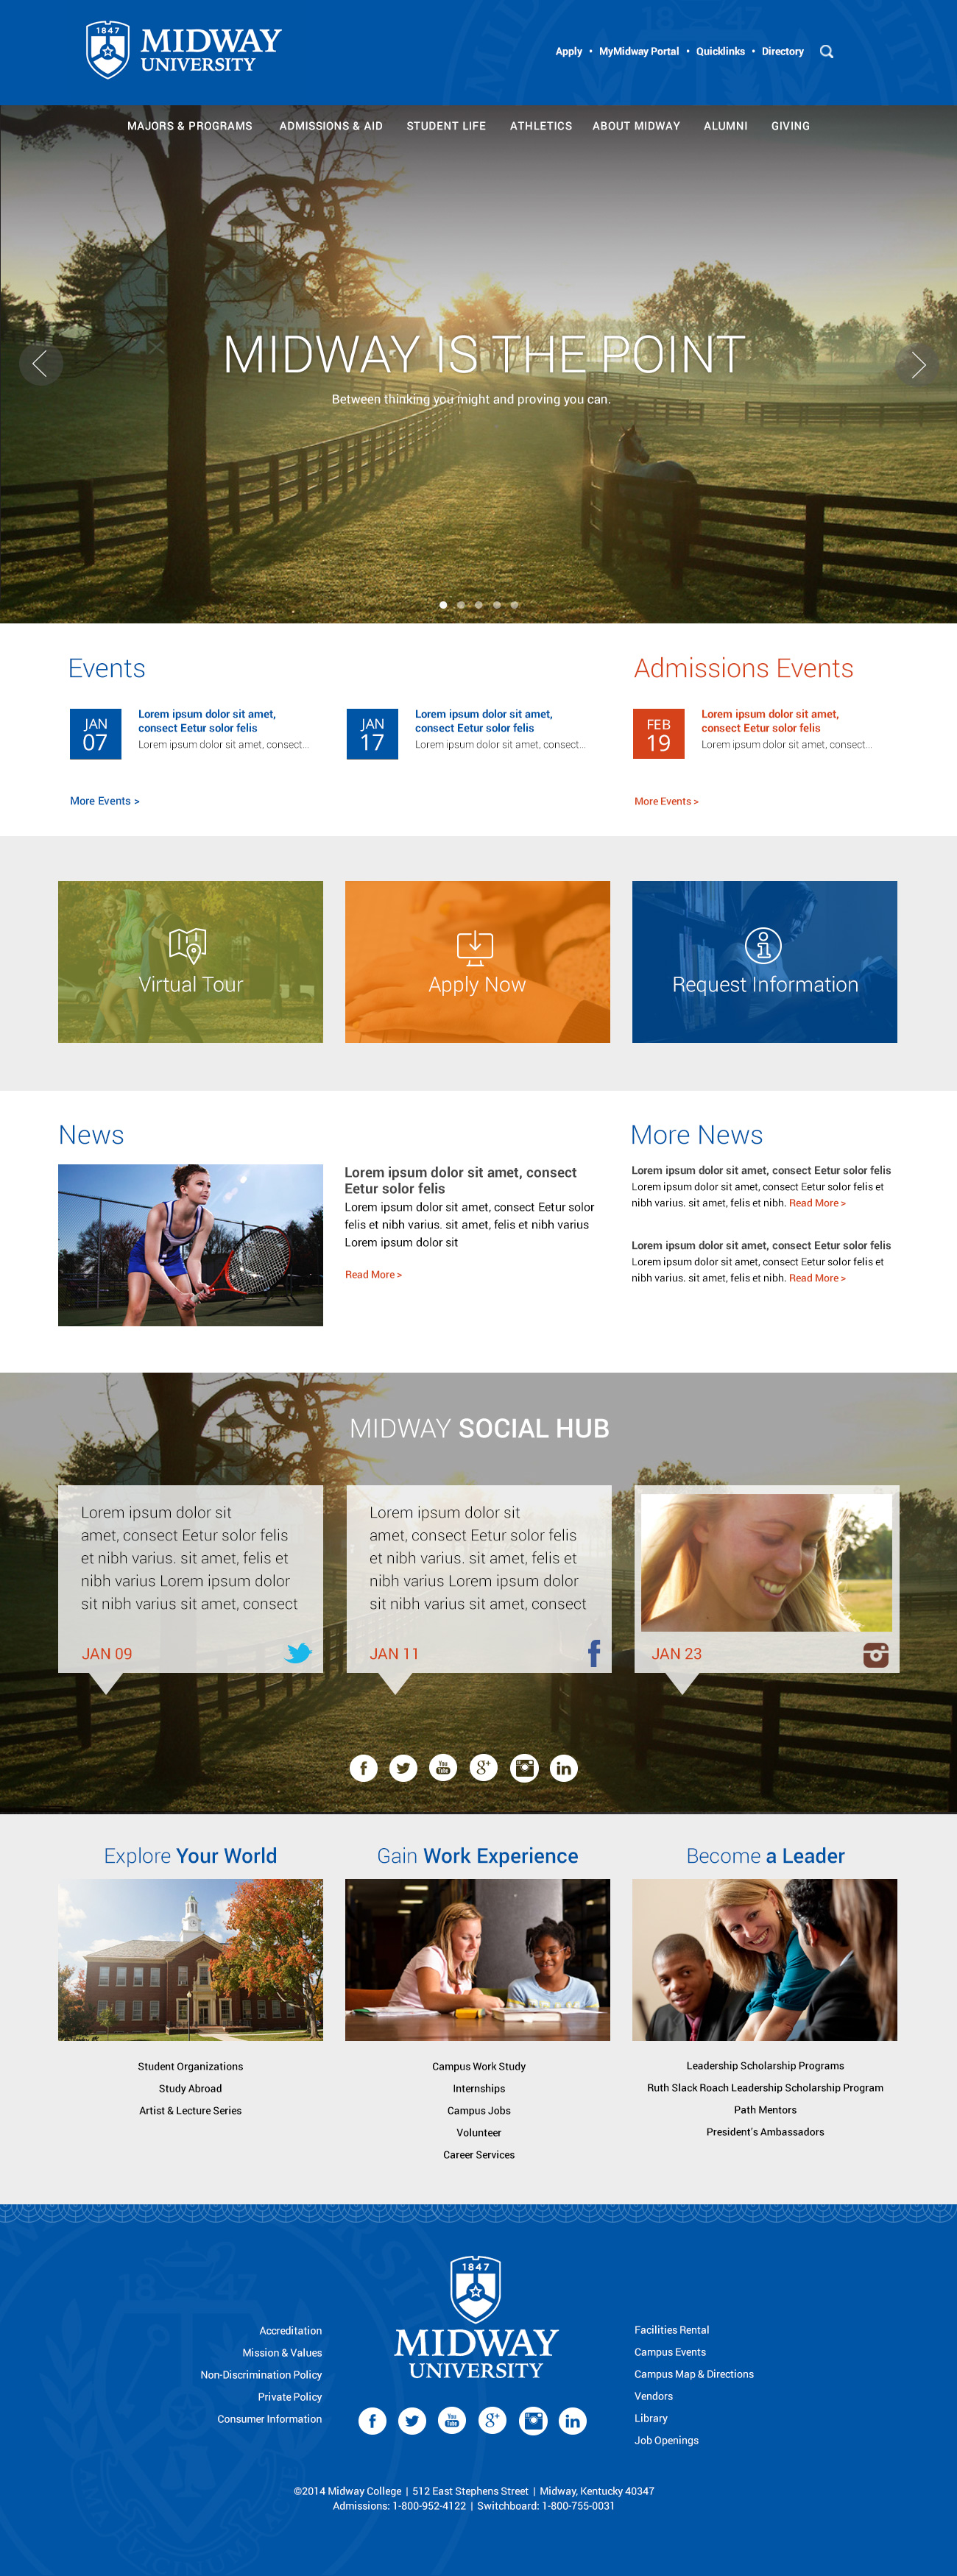 Midway-Design1-Homepage-1170